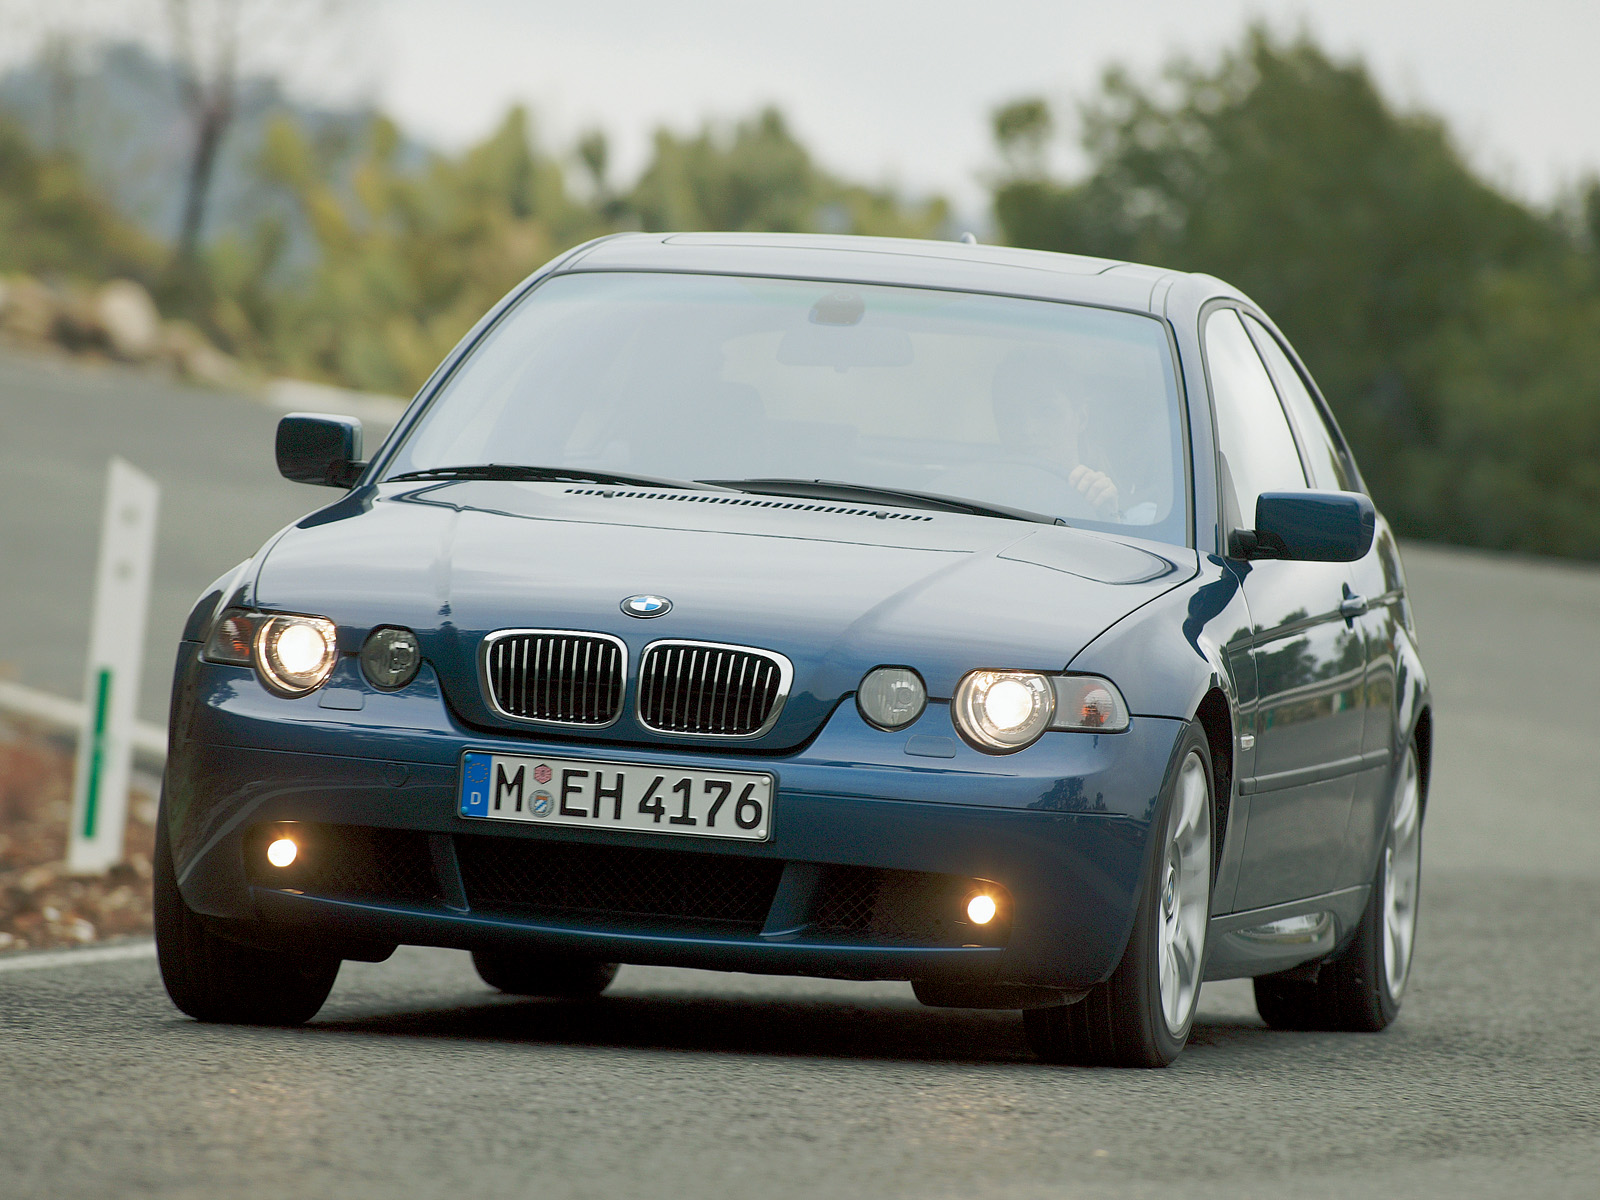 BMW 3 series 325ti 2001 photo - 1